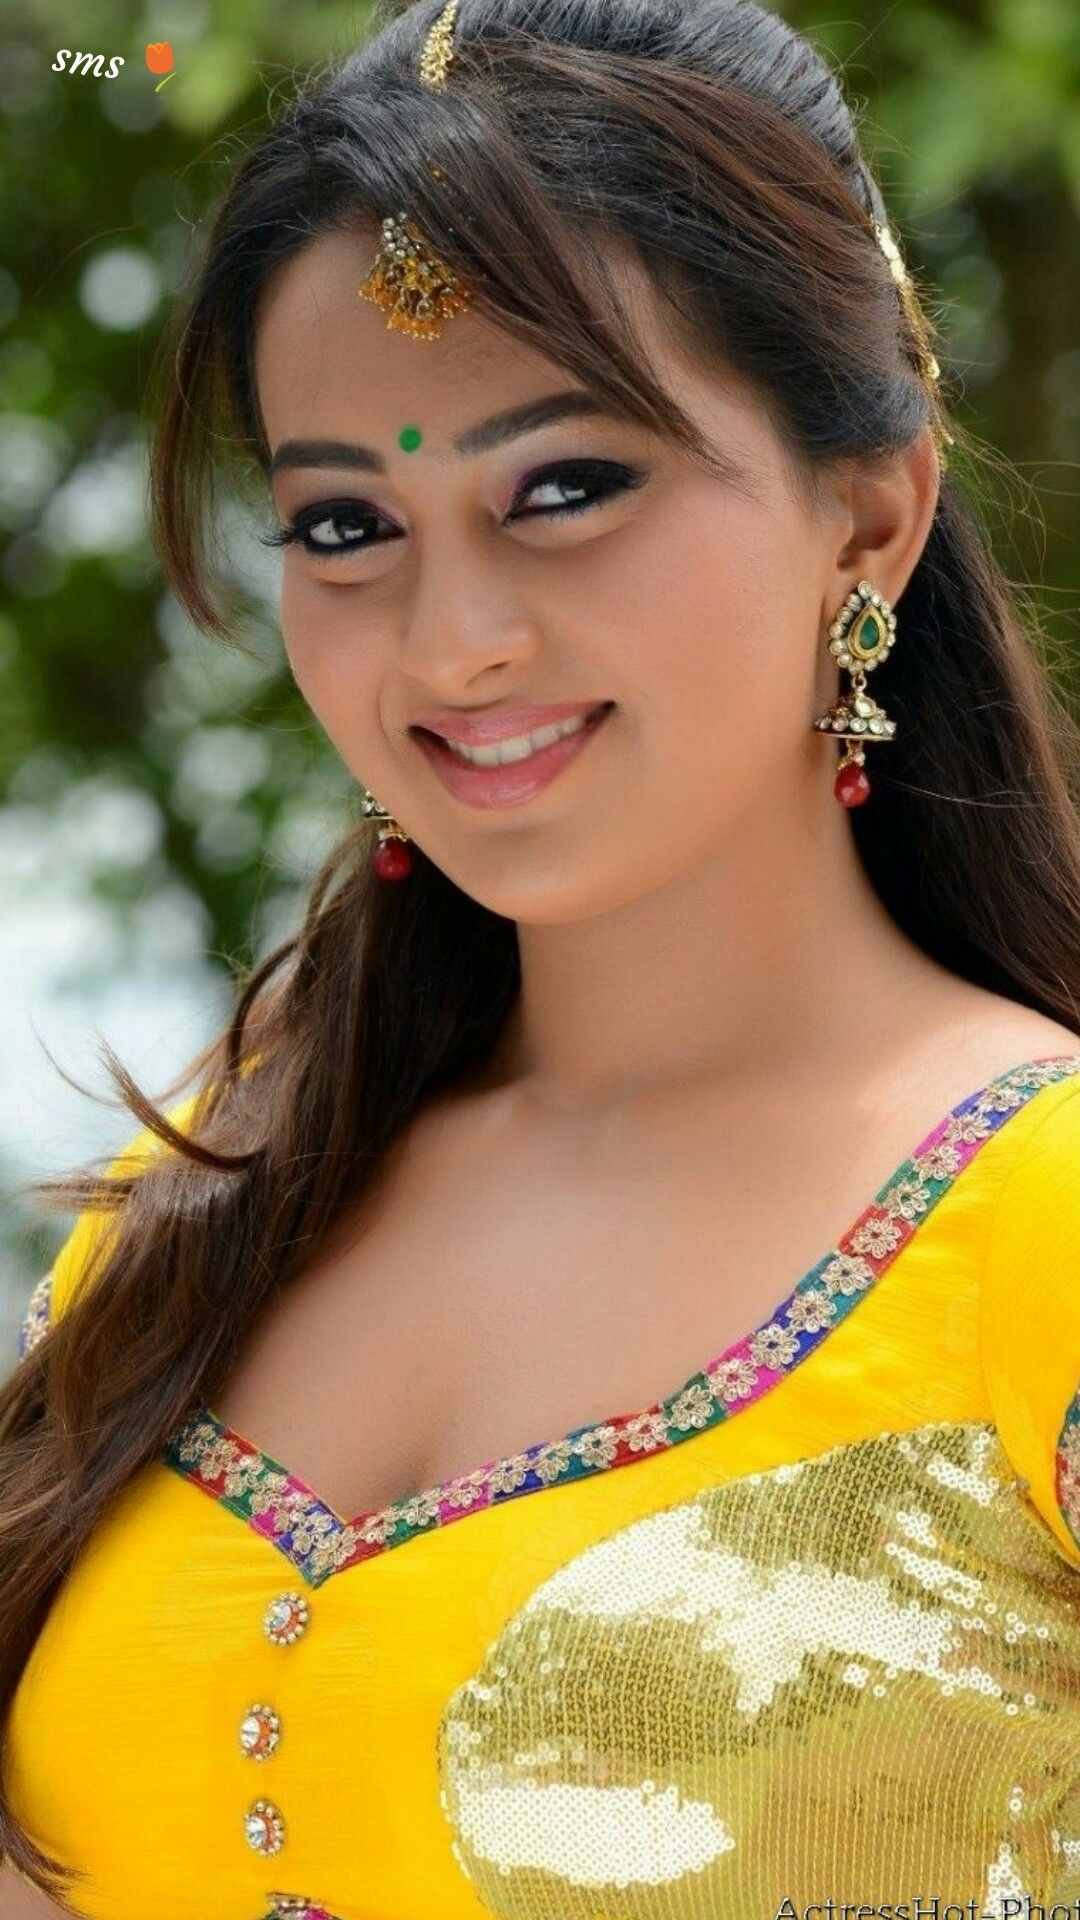 Pin by sanjib on that beautiful girl pinterest indian beauty beautiful lips beautiful models beautiful women indian models indian ethnic yellow dress indian beauty indian actresses woman style voltagebd Image collections